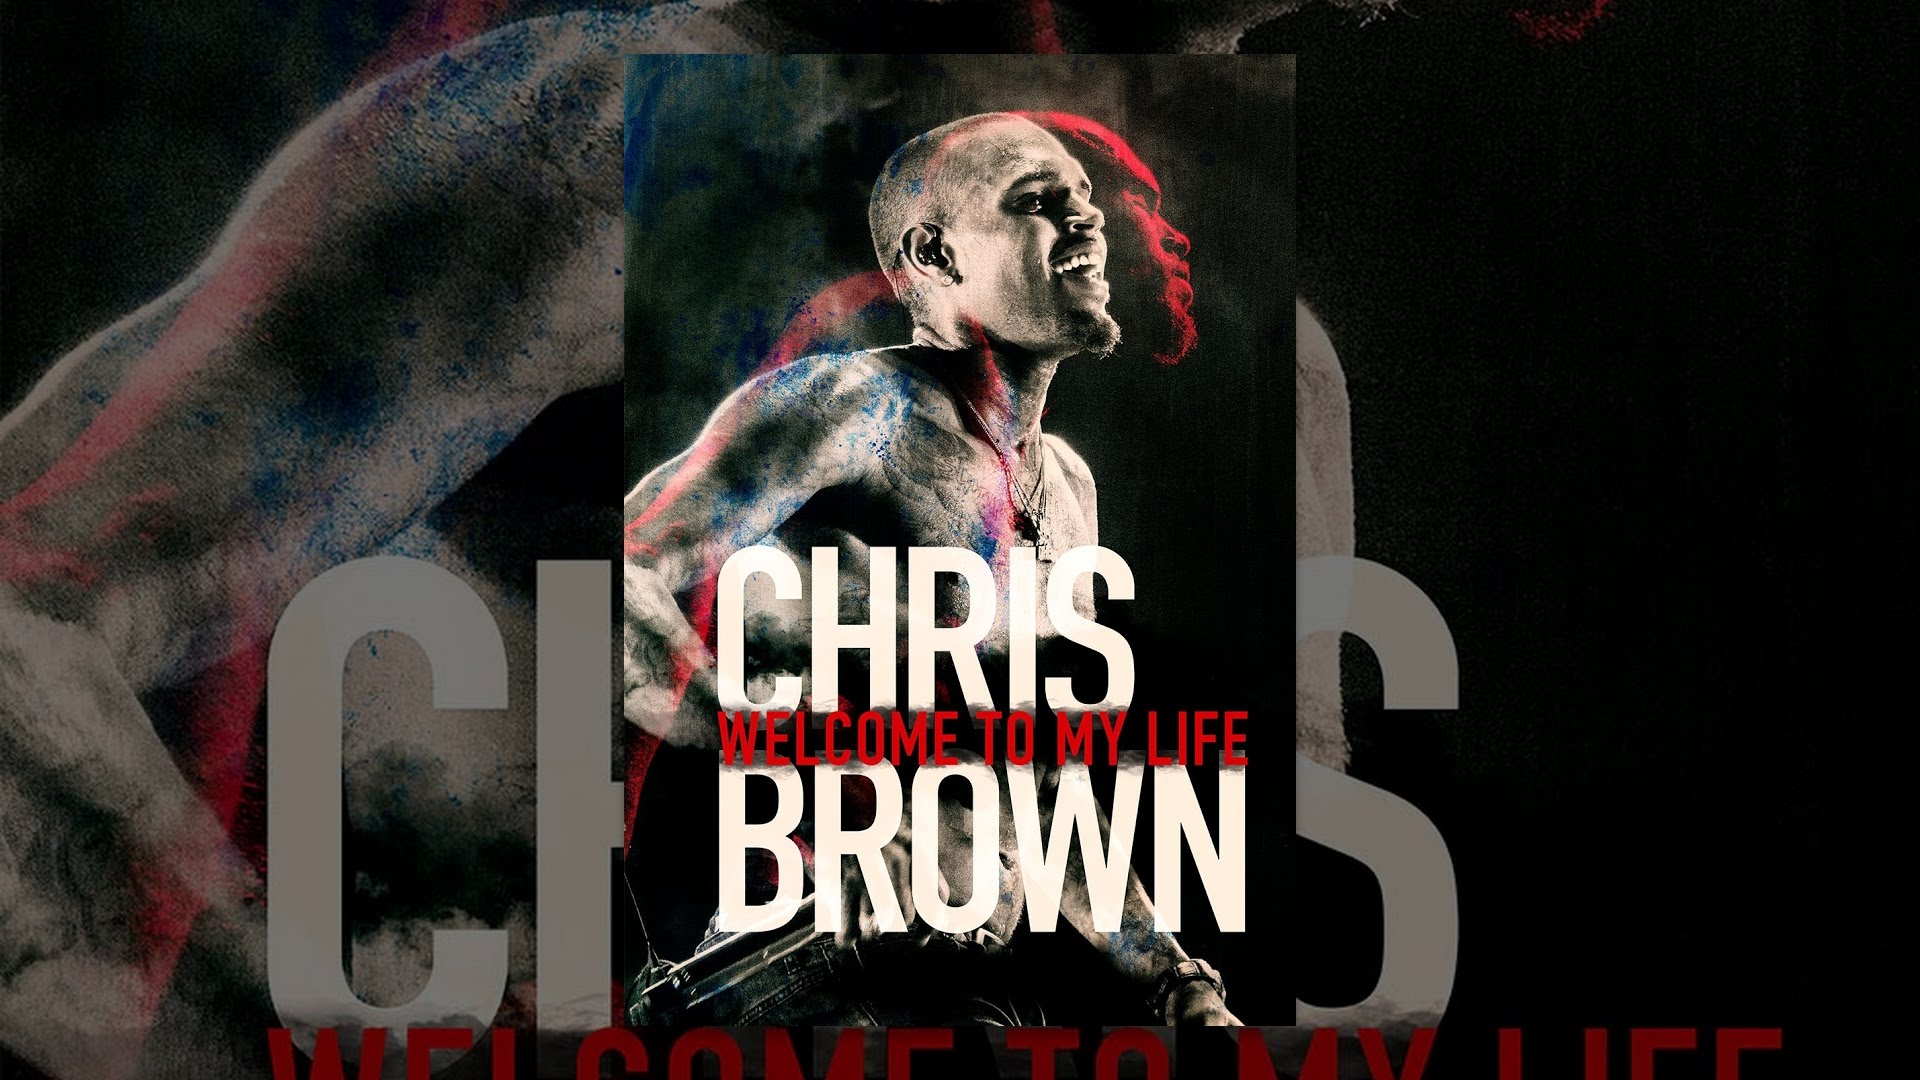 chris brown welcome to my life full movie online free